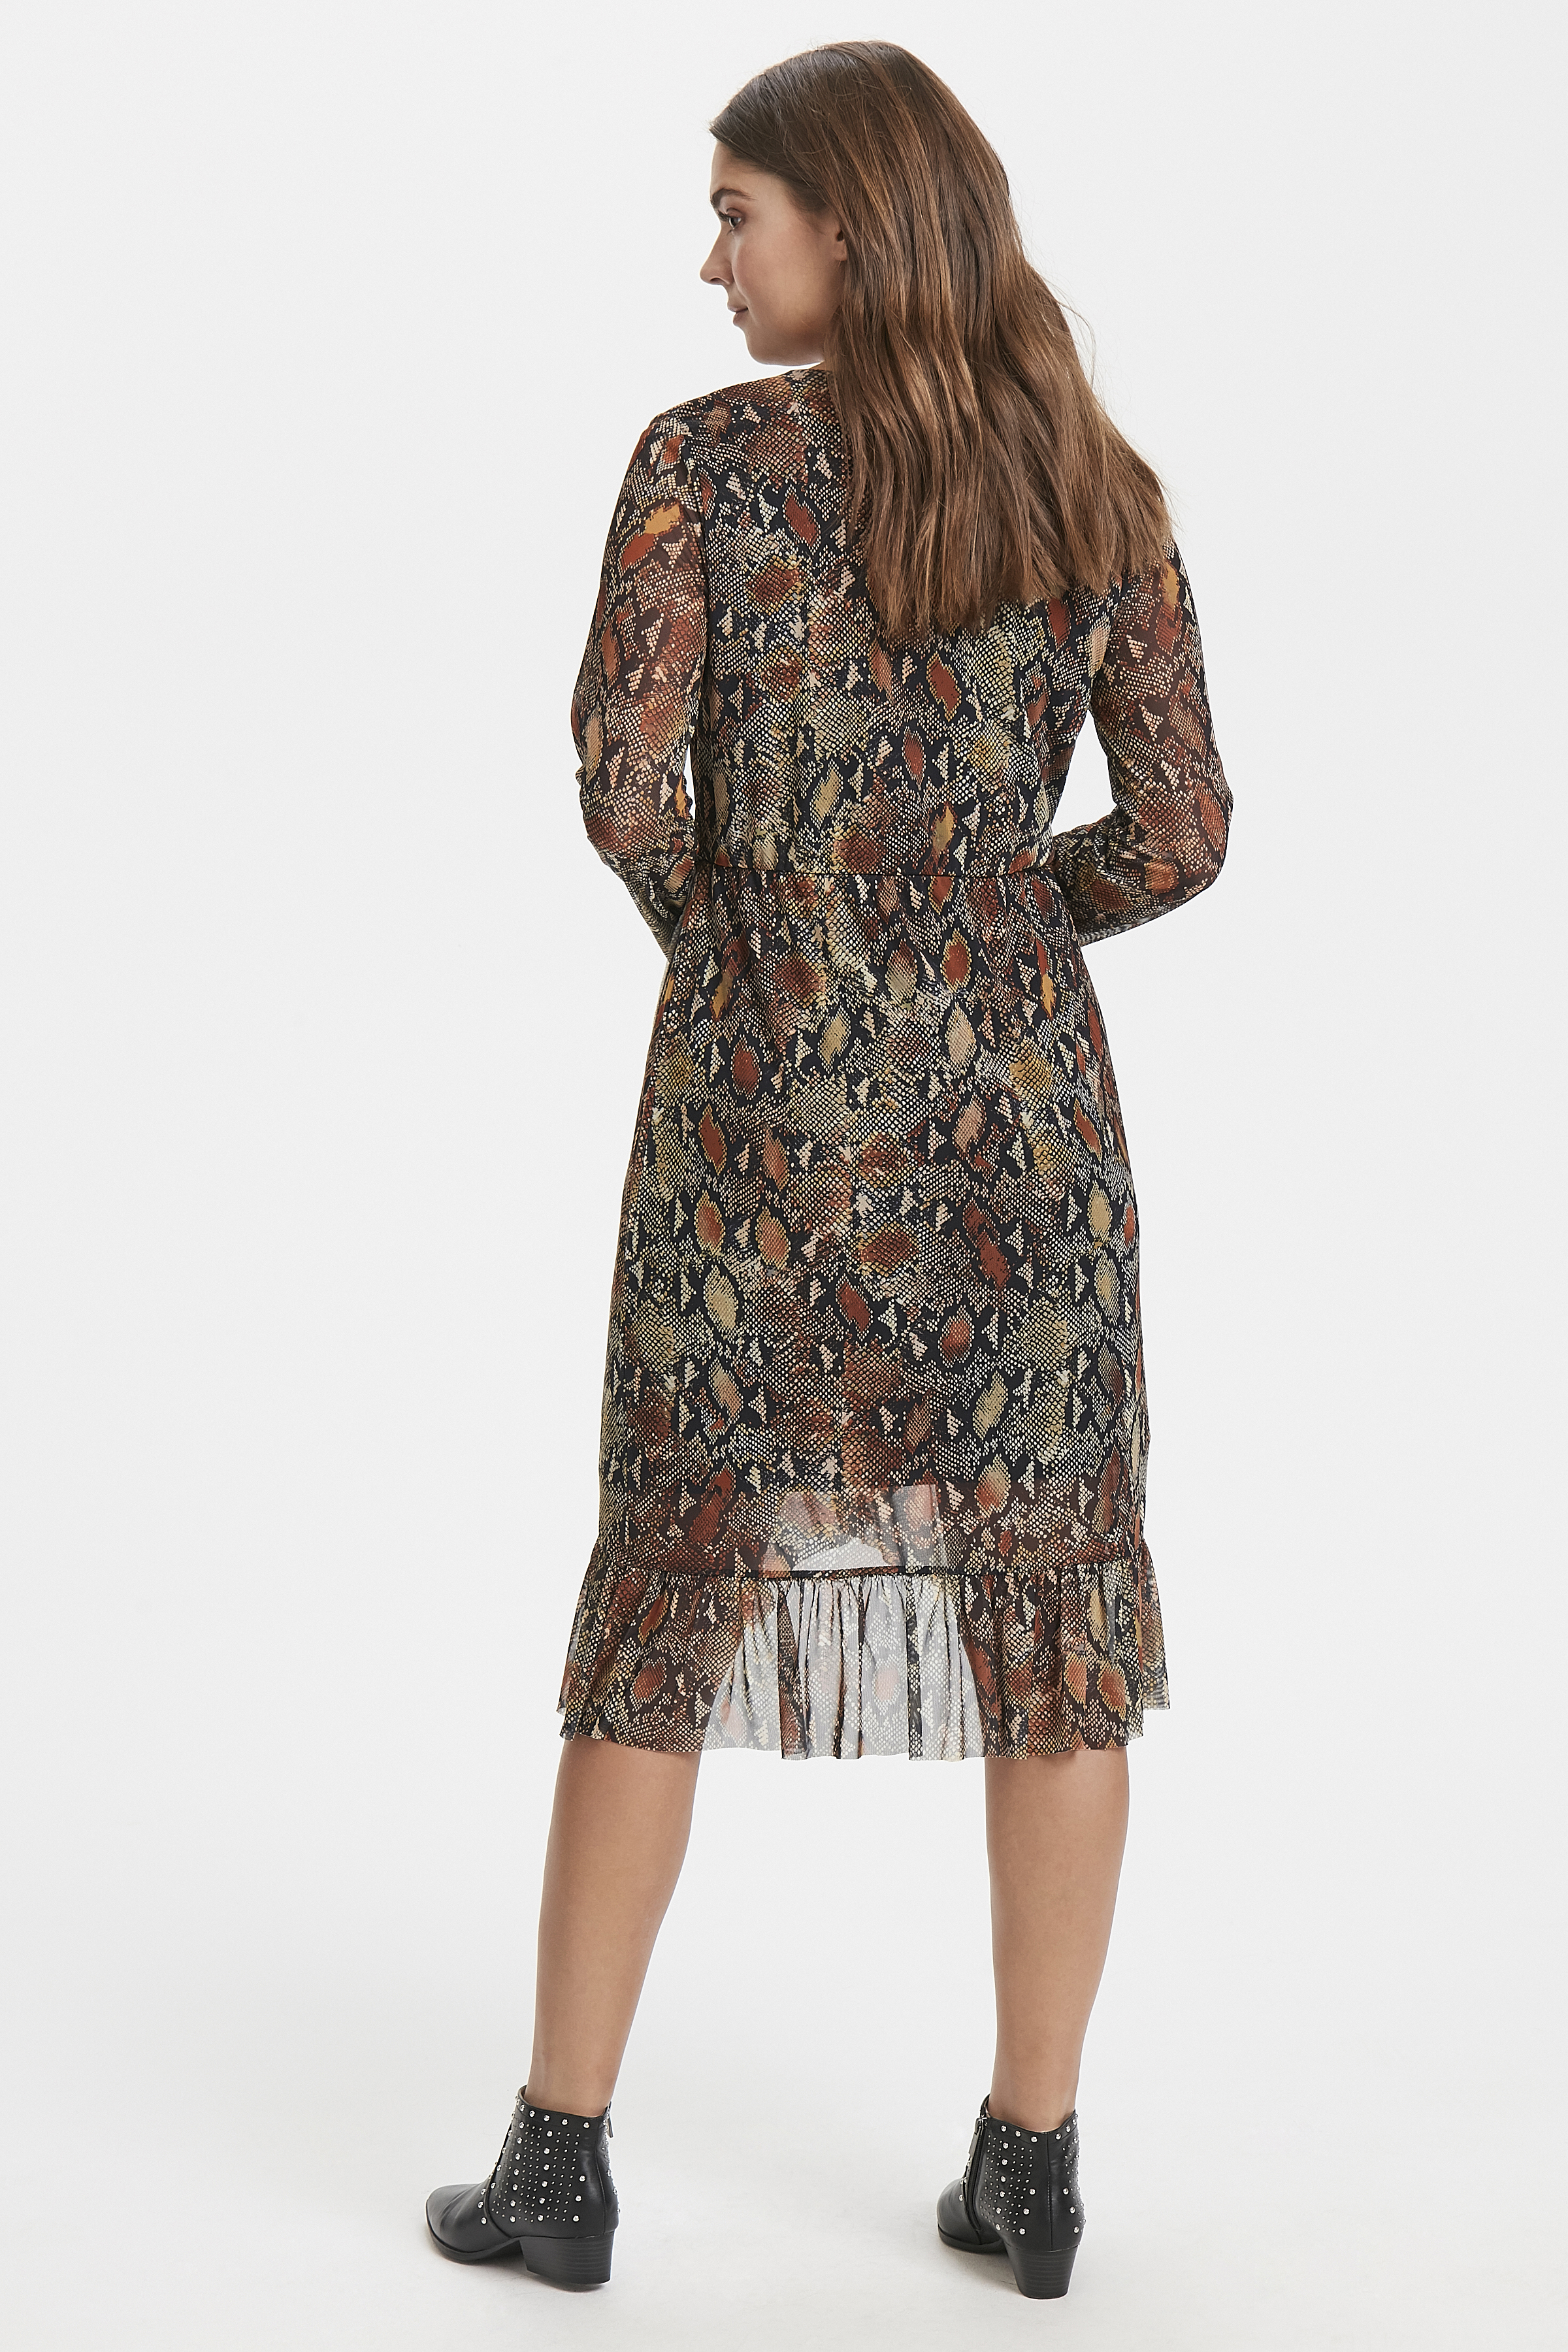 Snake combi 2 Jersey dress from b.young – Buy Snake combi 2 Jersey dress from size XS-XL here